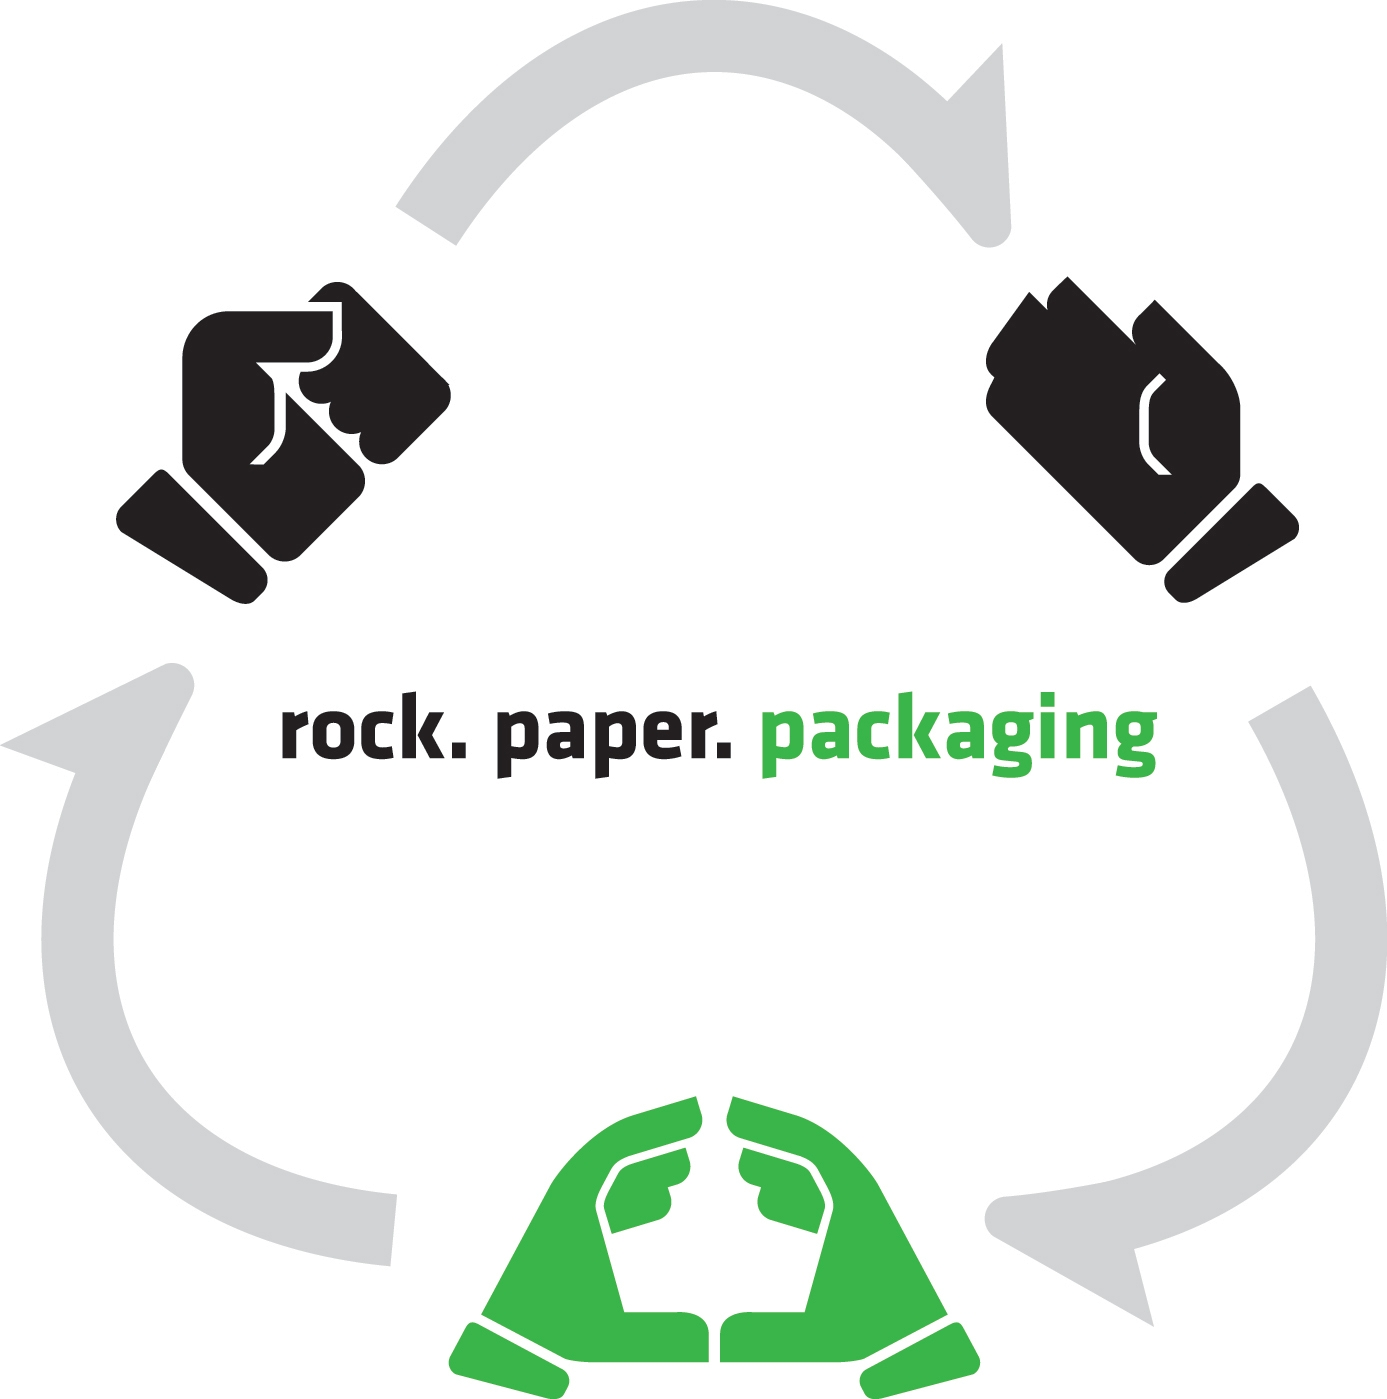 rock paper packaging